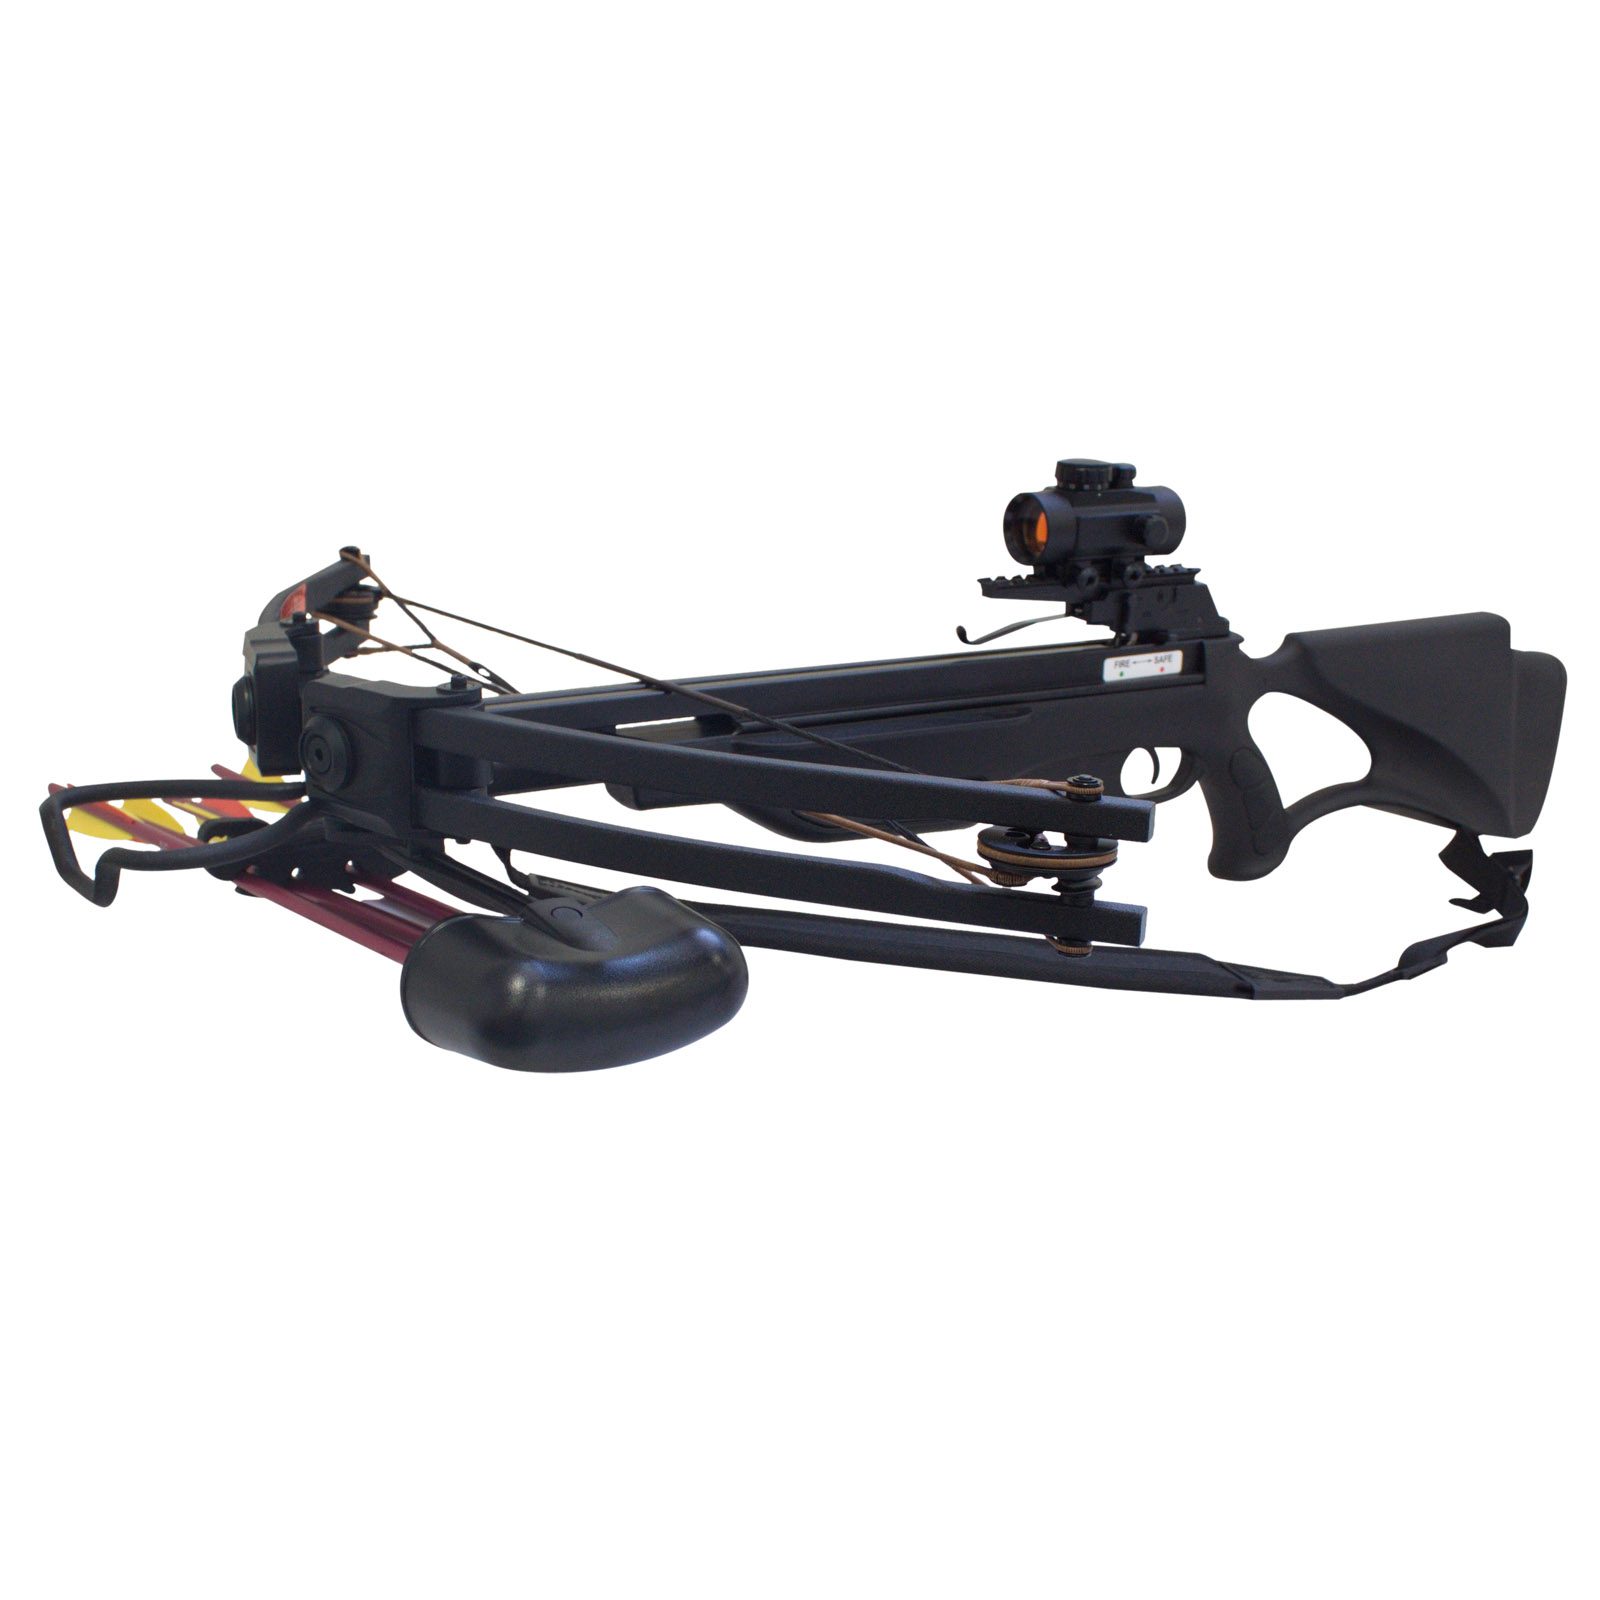 SAS Terrain 175lbs Crossbow Red Dot Scope Package